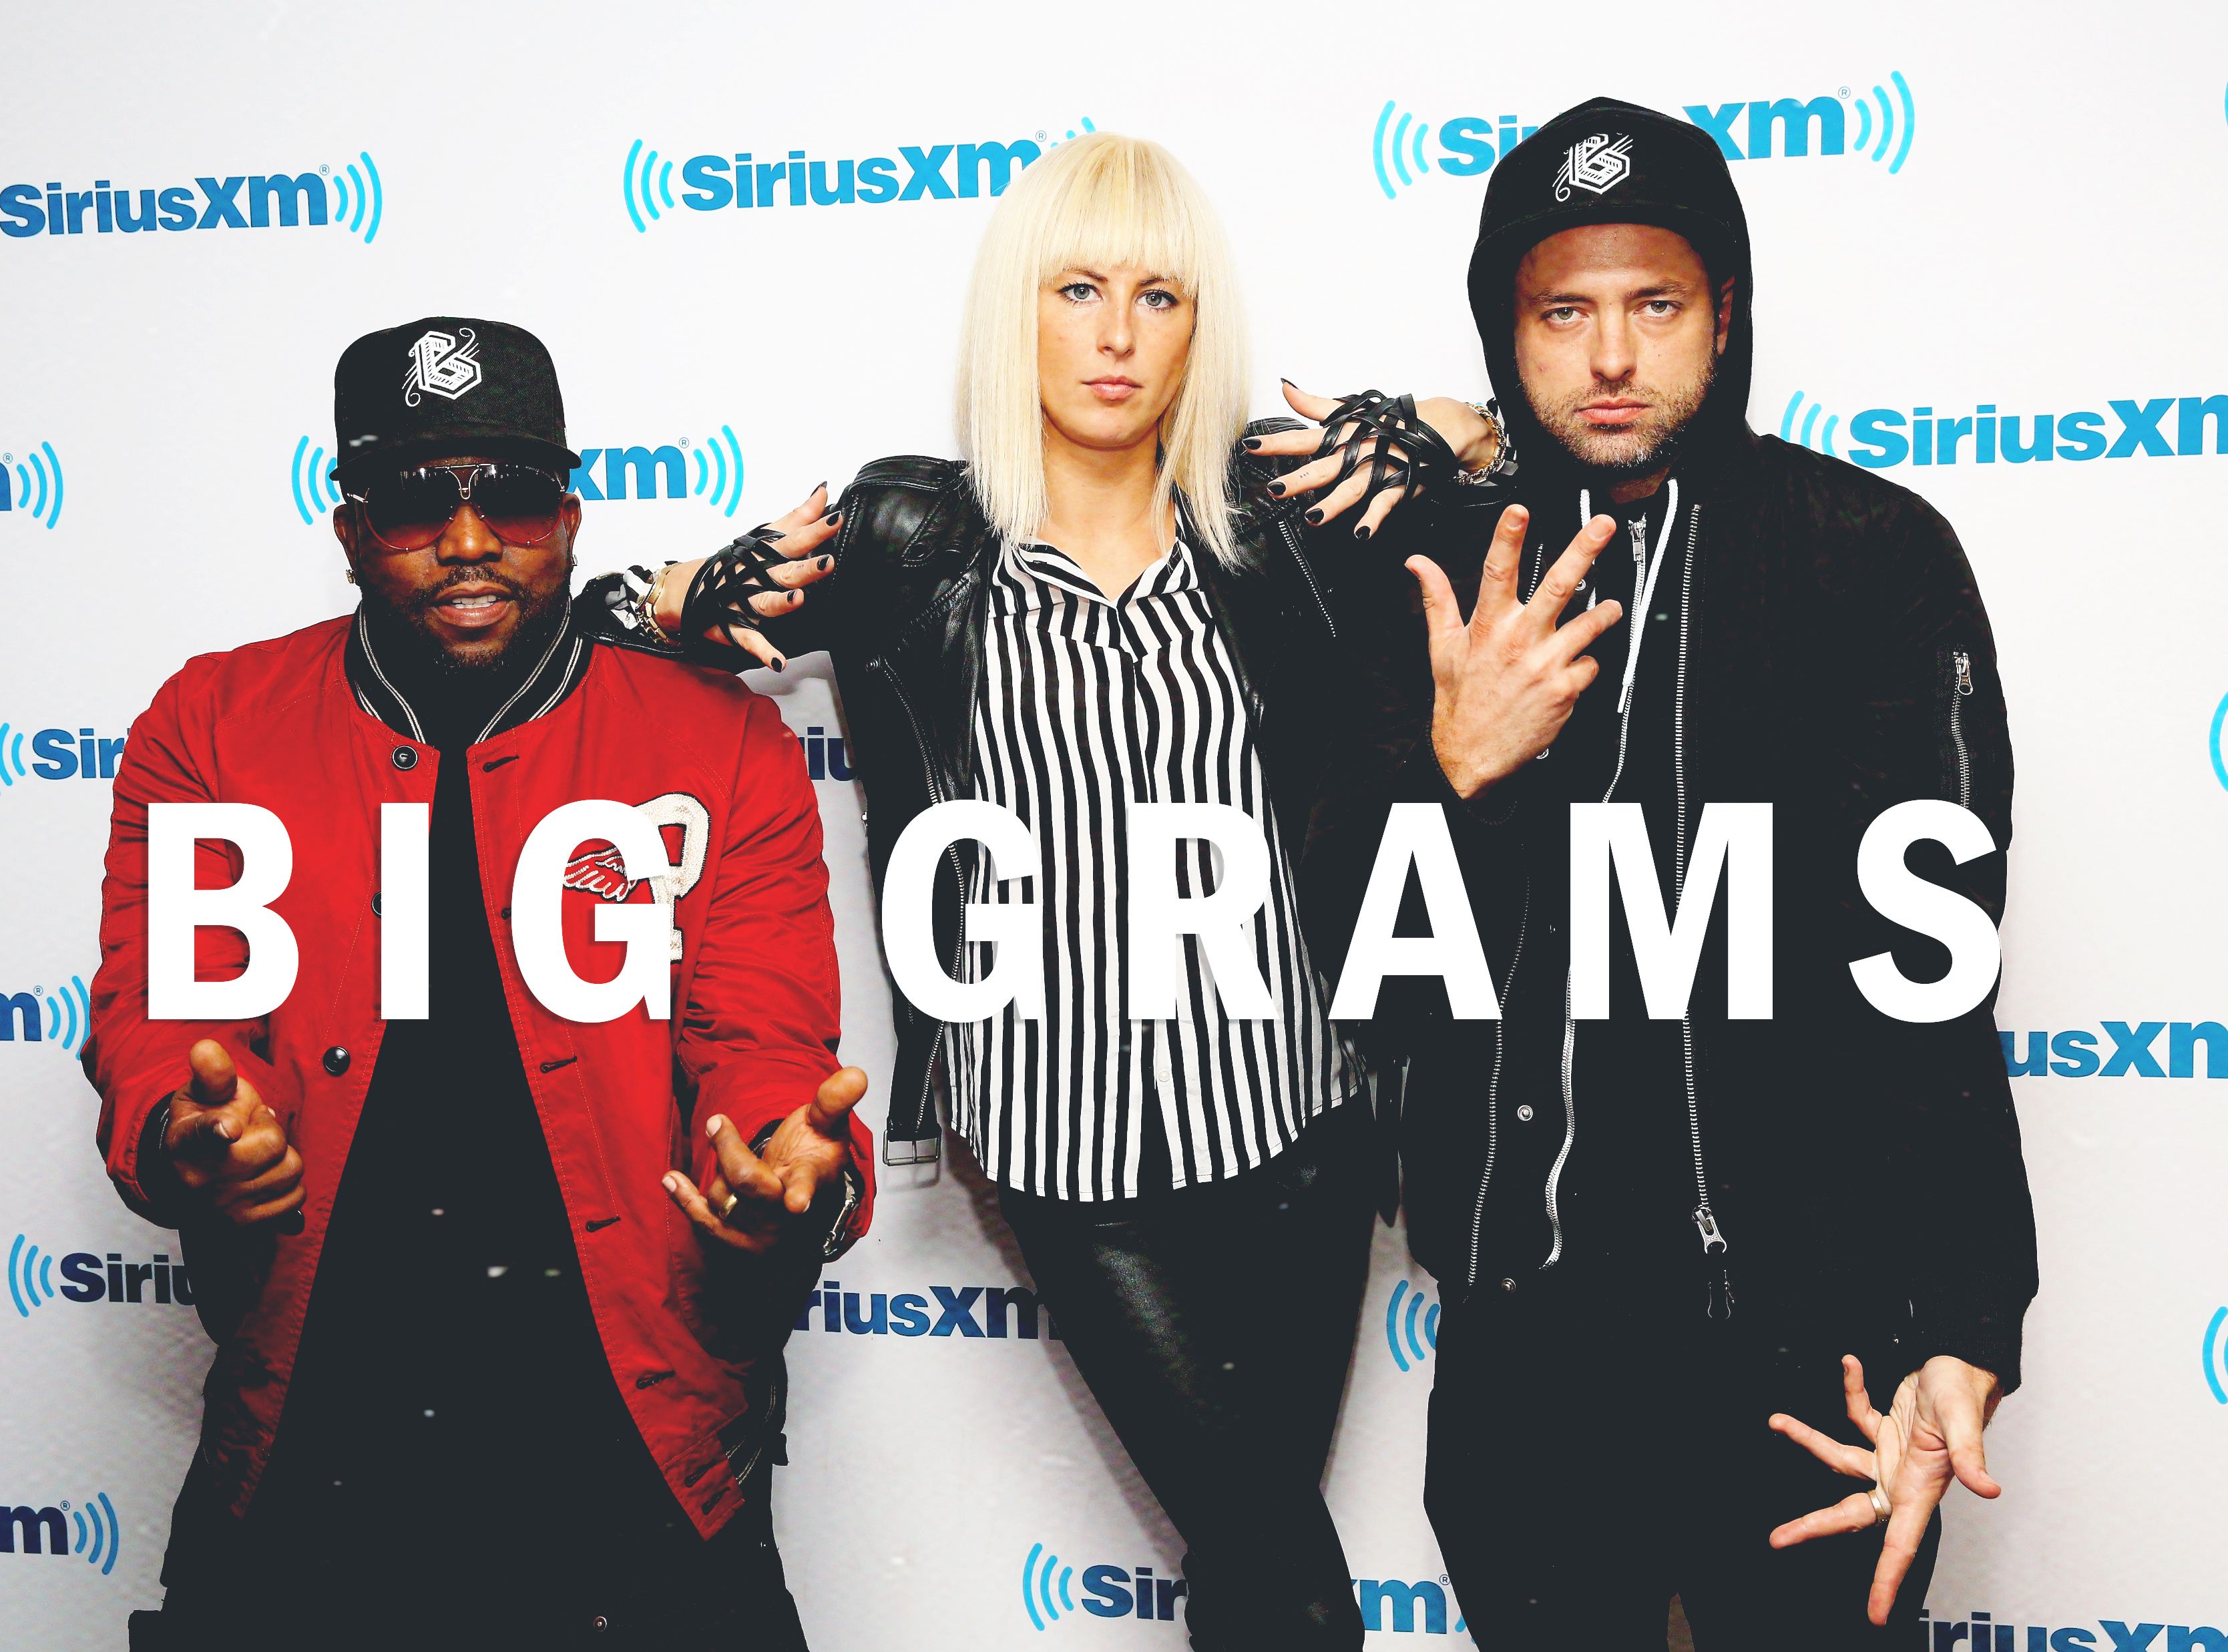 NEW YORK, NY - SEPTEMBER 25:  Big Boi, Sarah Barthel and Josh Carter of Big Grams visit at SiriusXM Studios on September 25, 2015 in New York City.  (Photo by Robin Marchant/Getty Images)